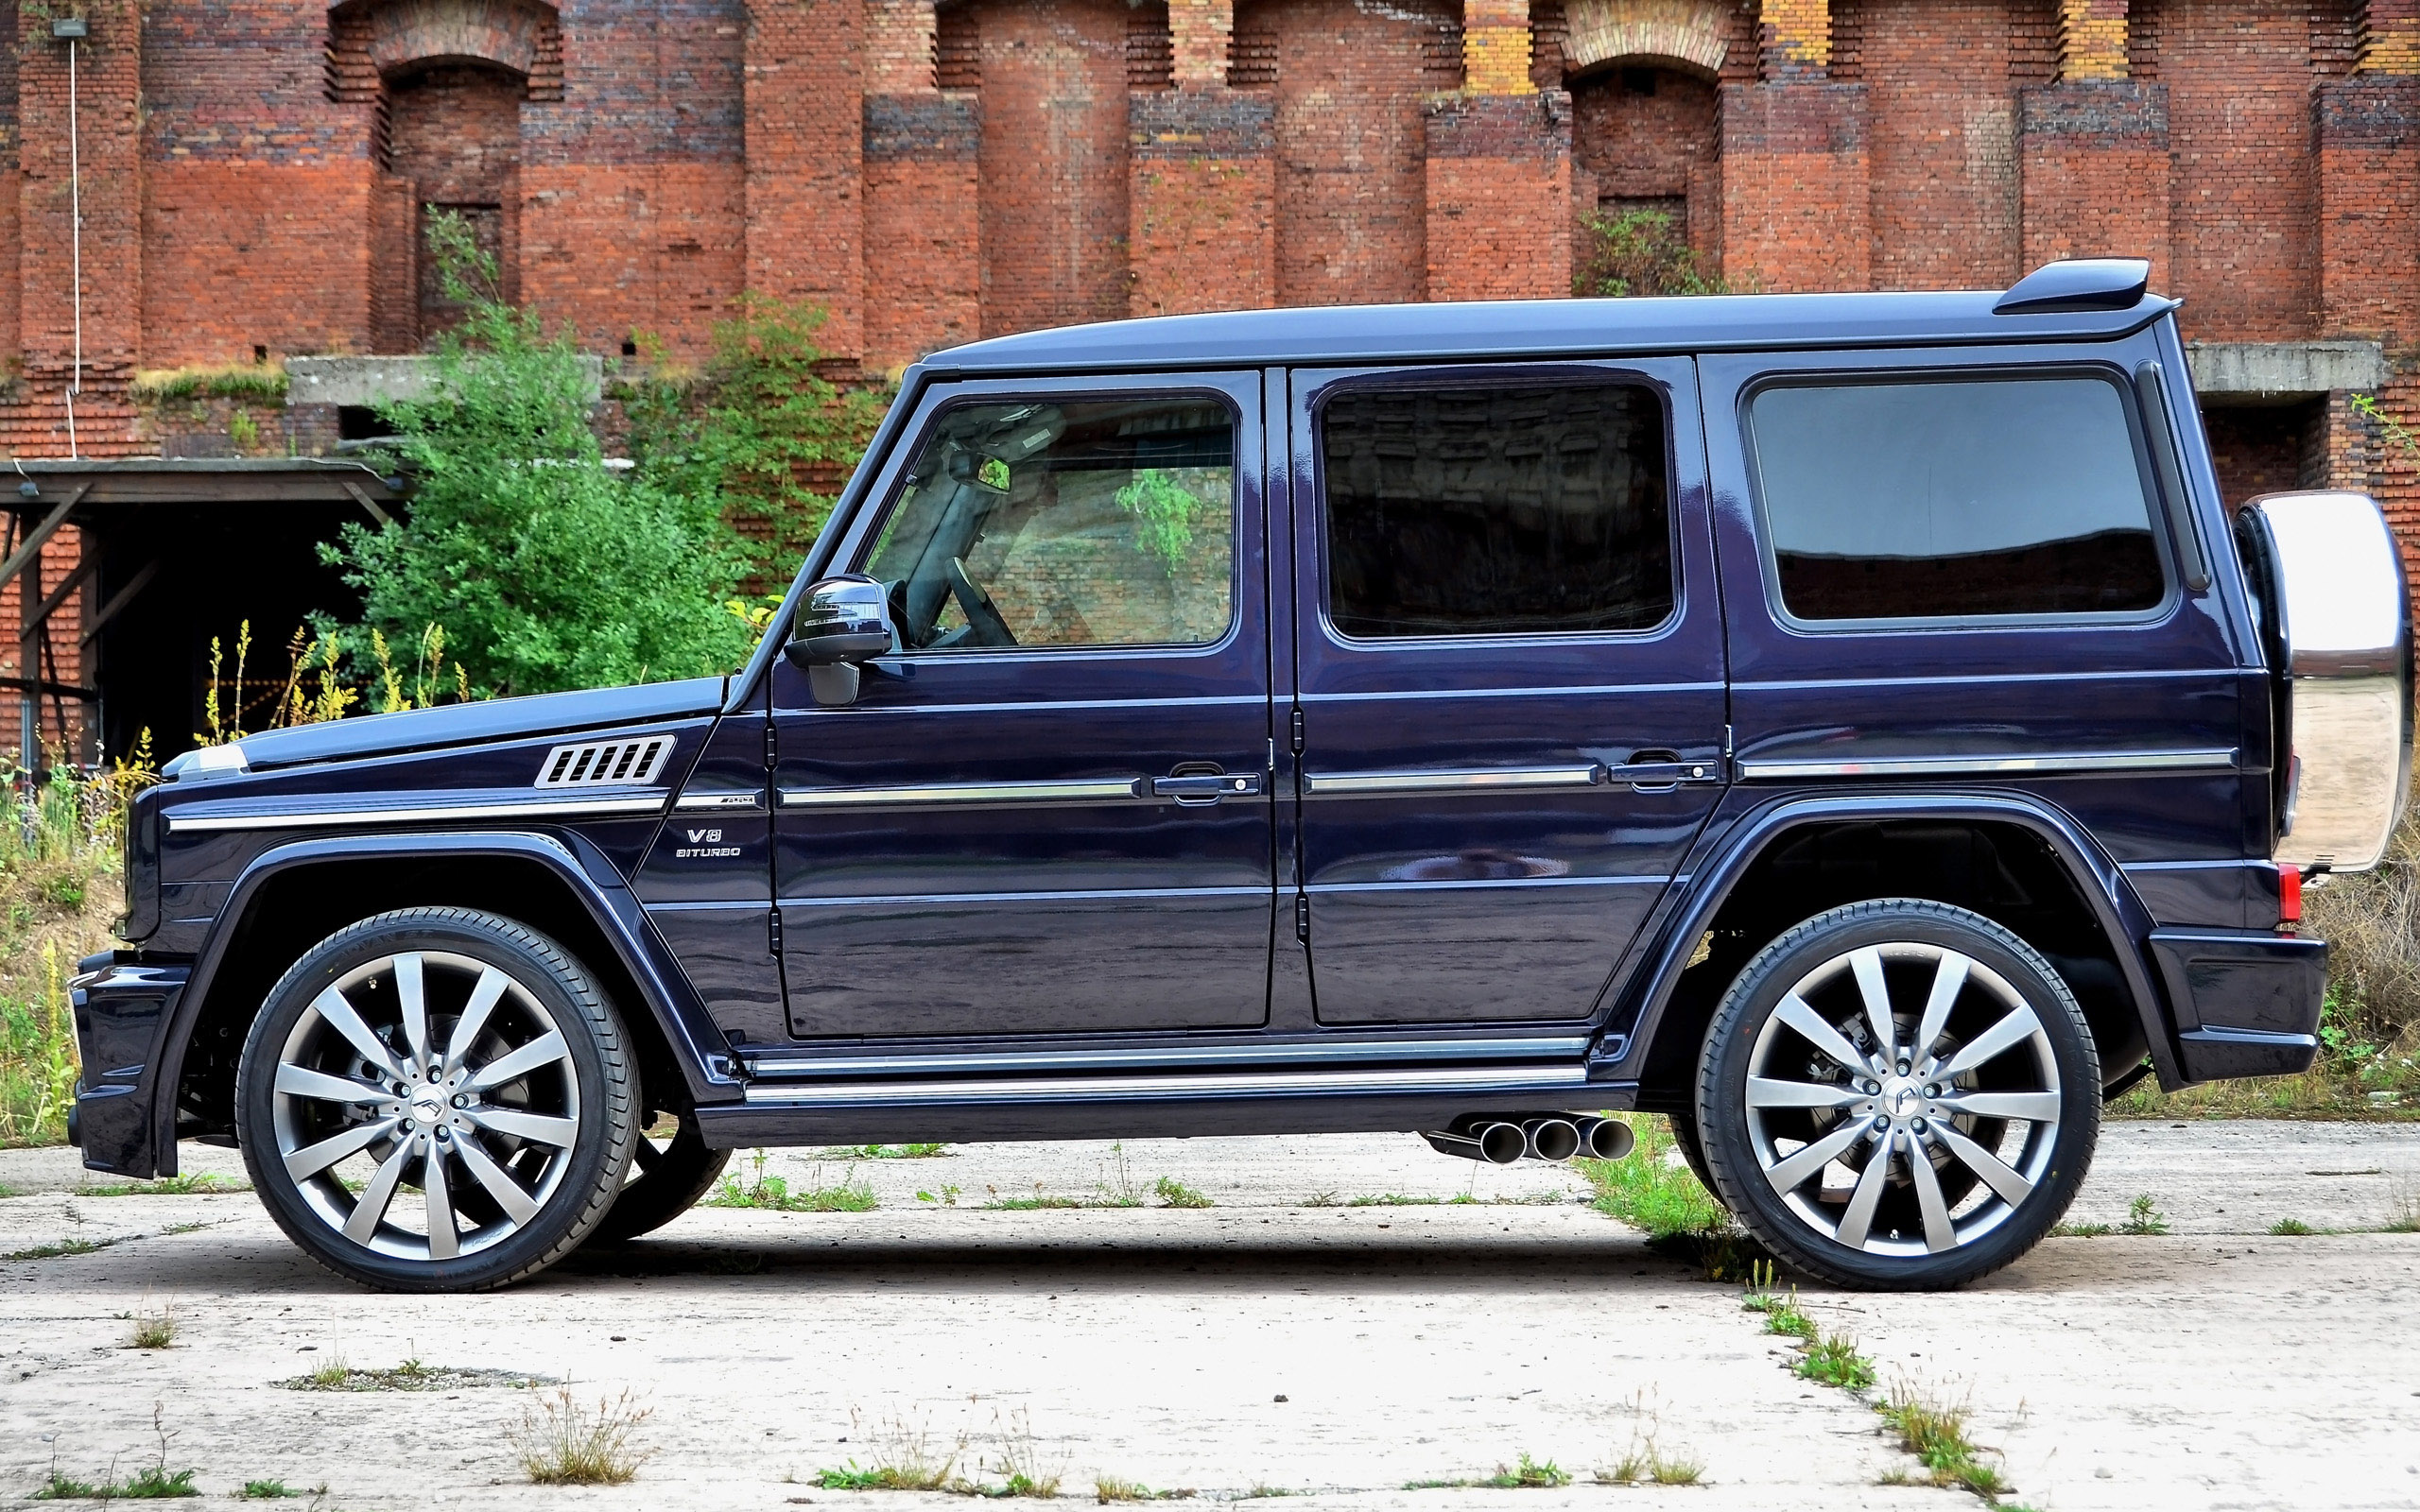 2013 art mercedes benz g55 amg streetline 65 picture 105346